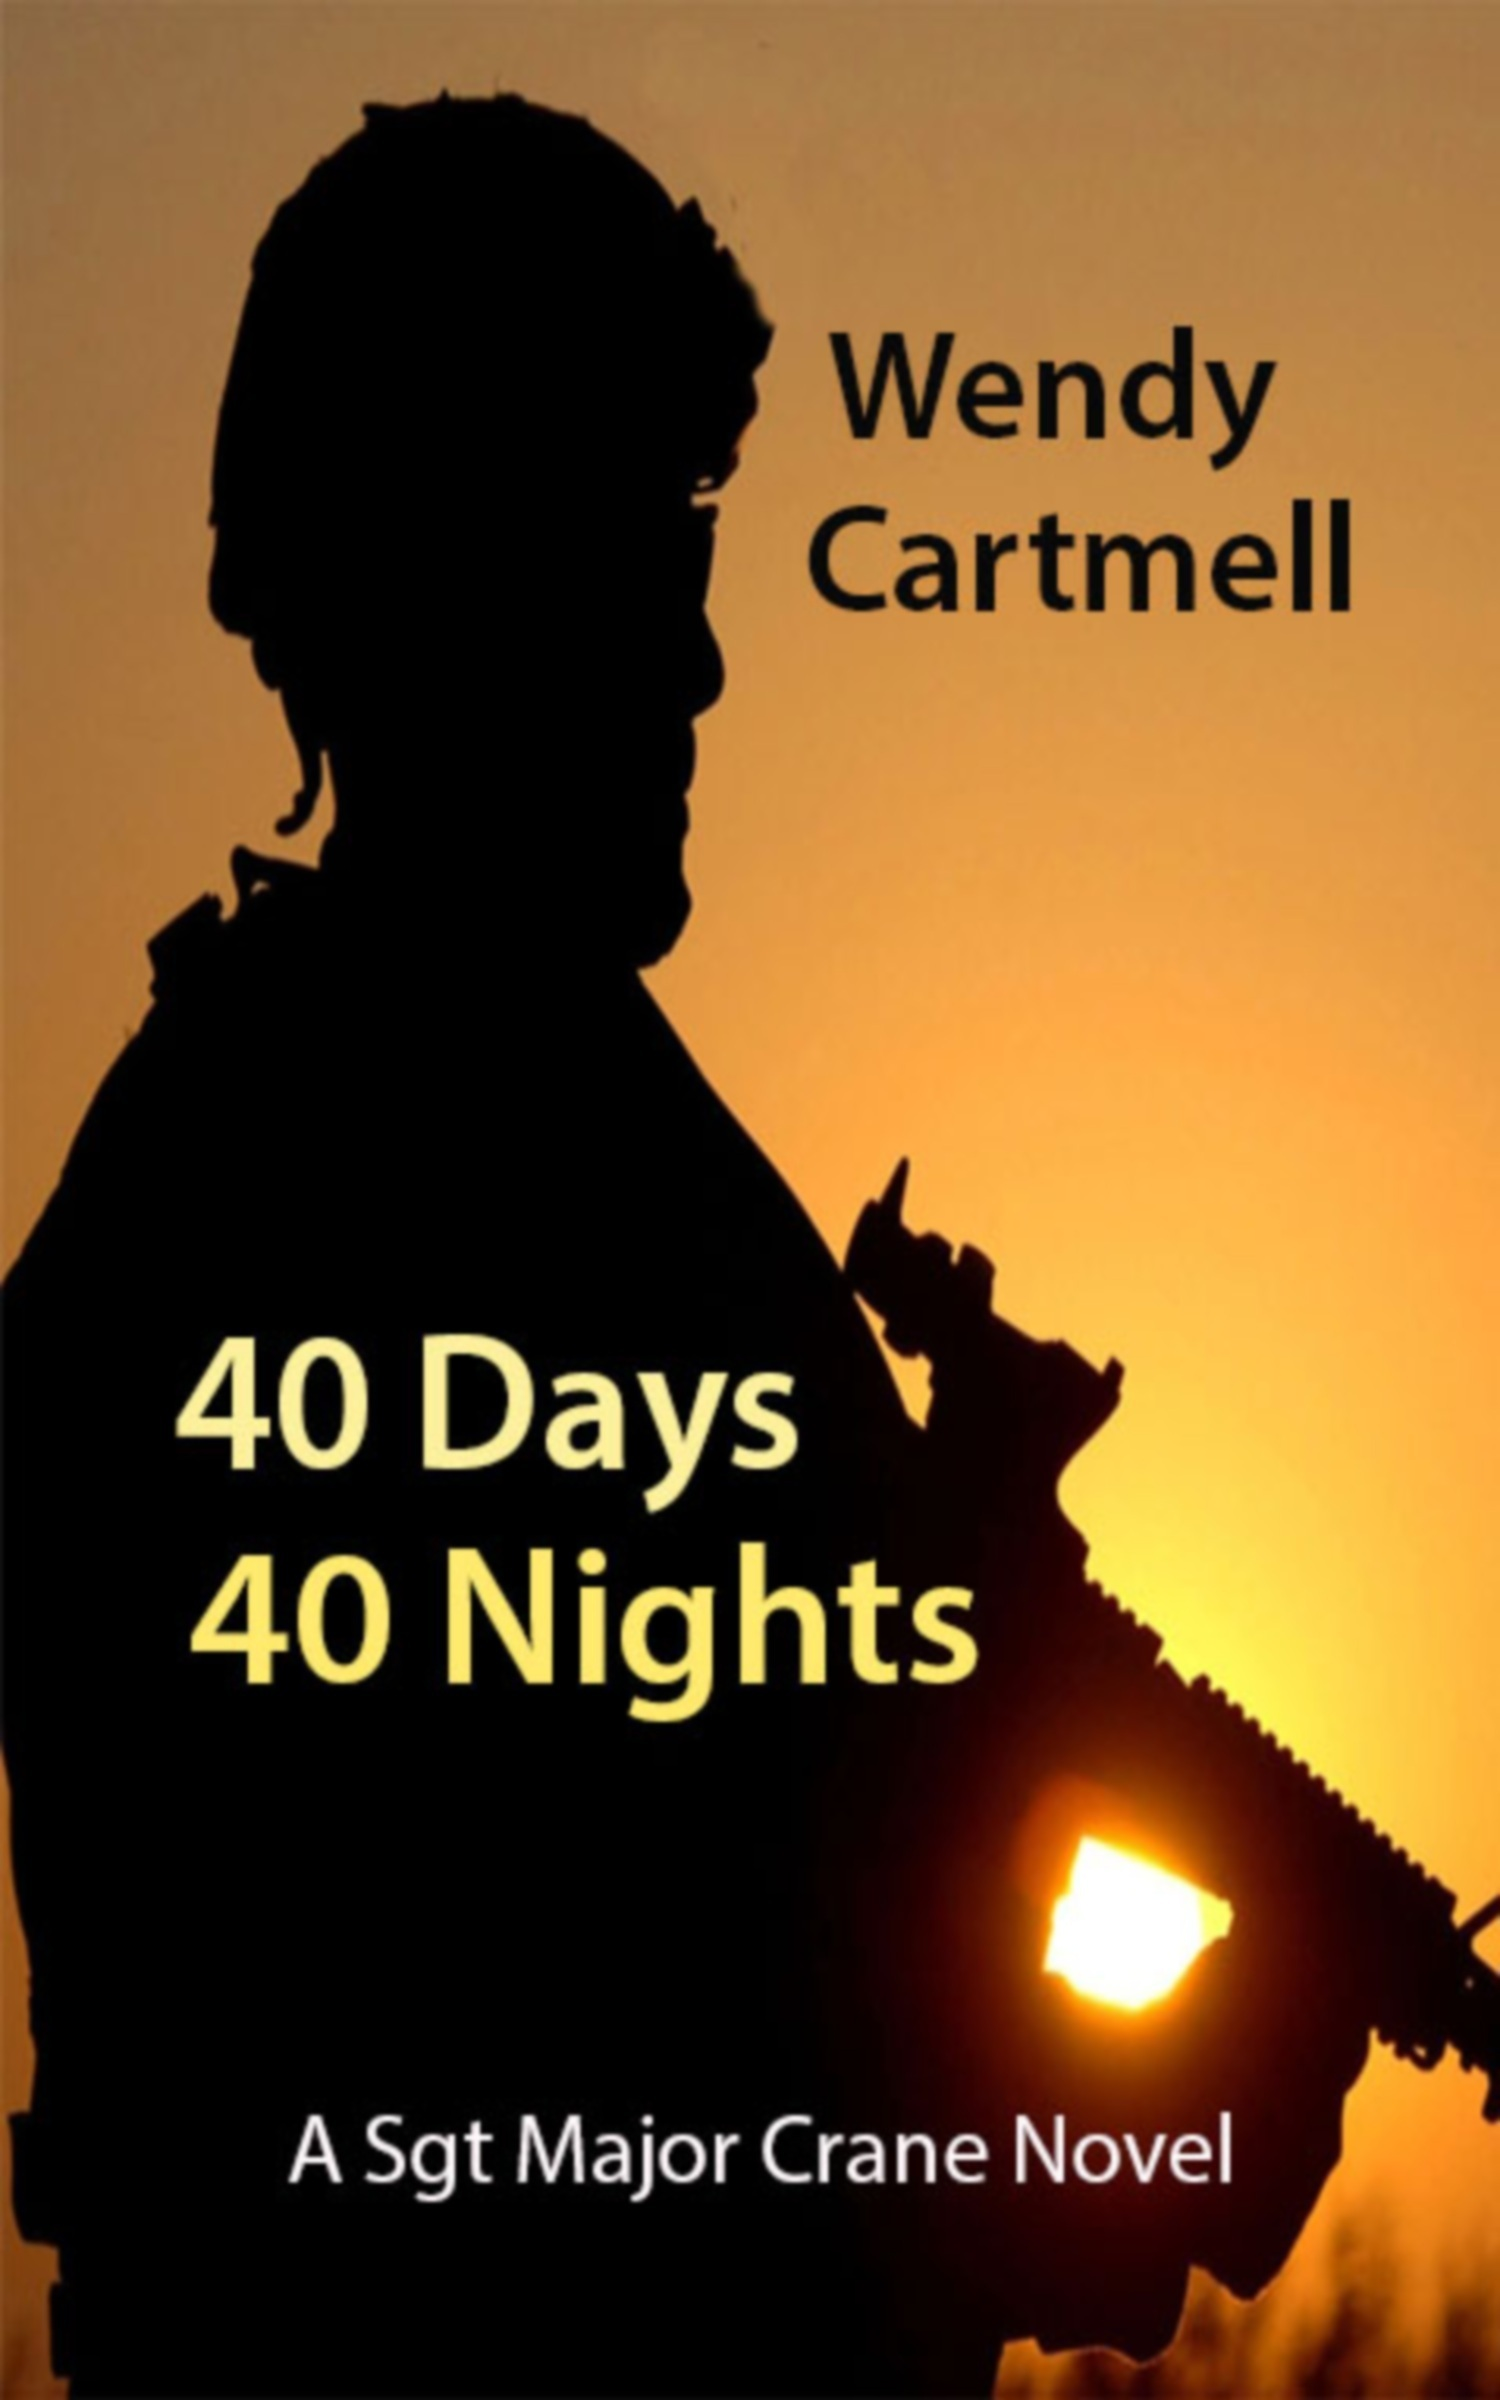 40 Days 40 Nights (A Sgt Major Crane novel)